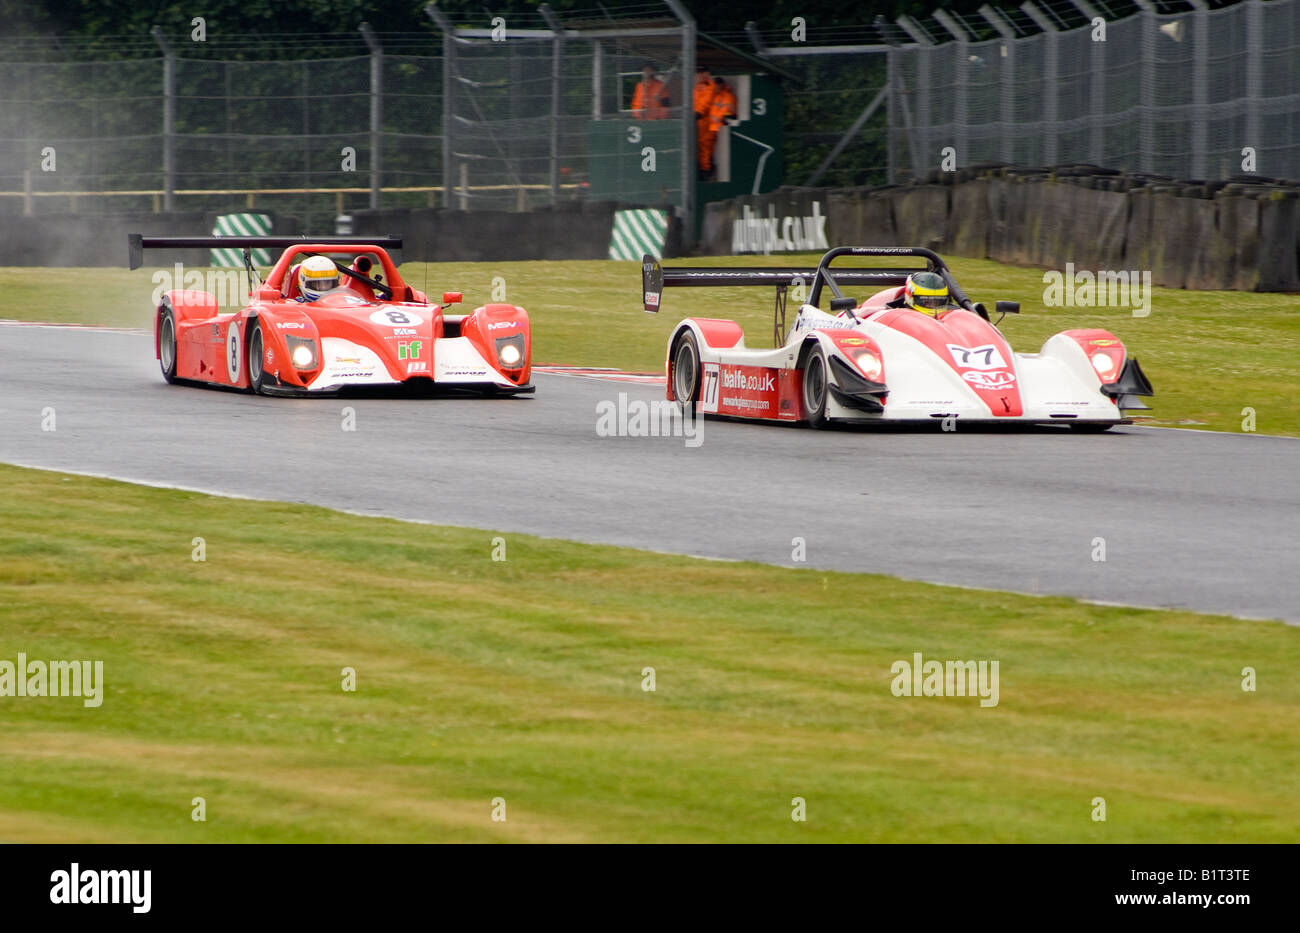 A V De V Uk Norma And Ligier Sports Race Cars Exit Old